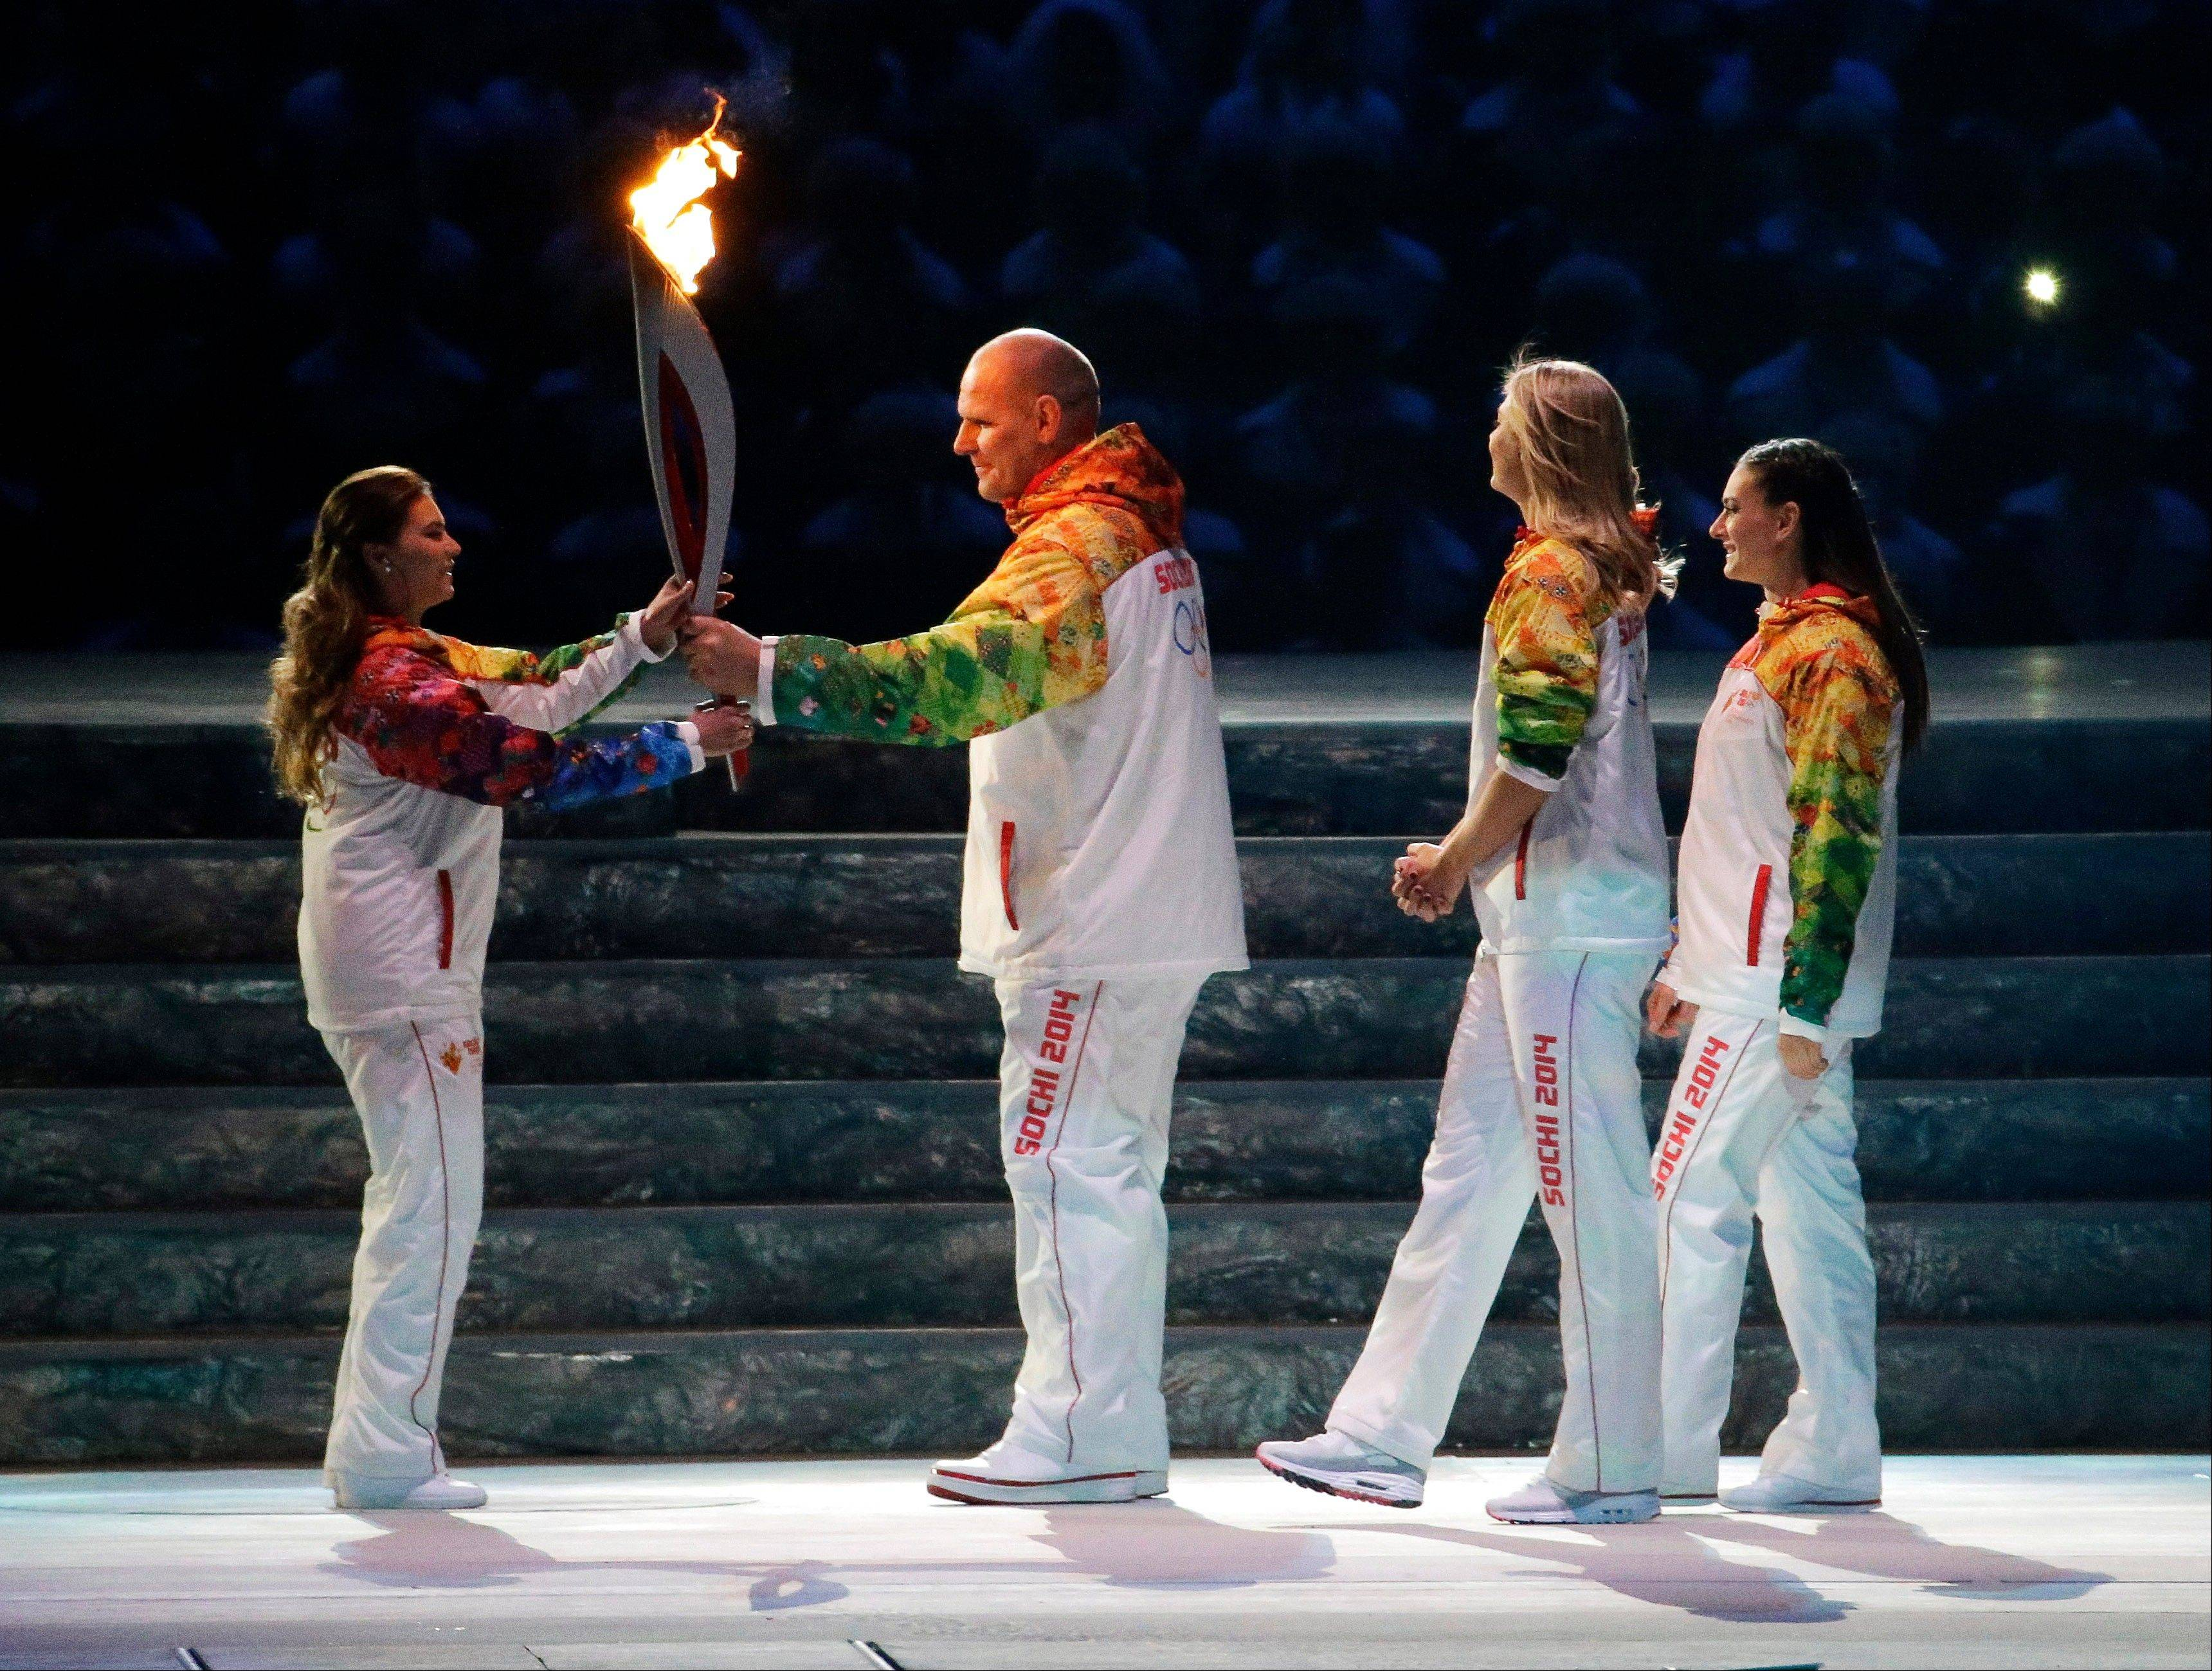 Russian wrestler Alexander Karelin, second from left, hands the torch to Russian gymnast Alina Kabaeva, left, as Russian tennis player Maria Sharapova, second from right, and Russian pole vaulter Yelena Isinbayeva look on during the opening ceremony.